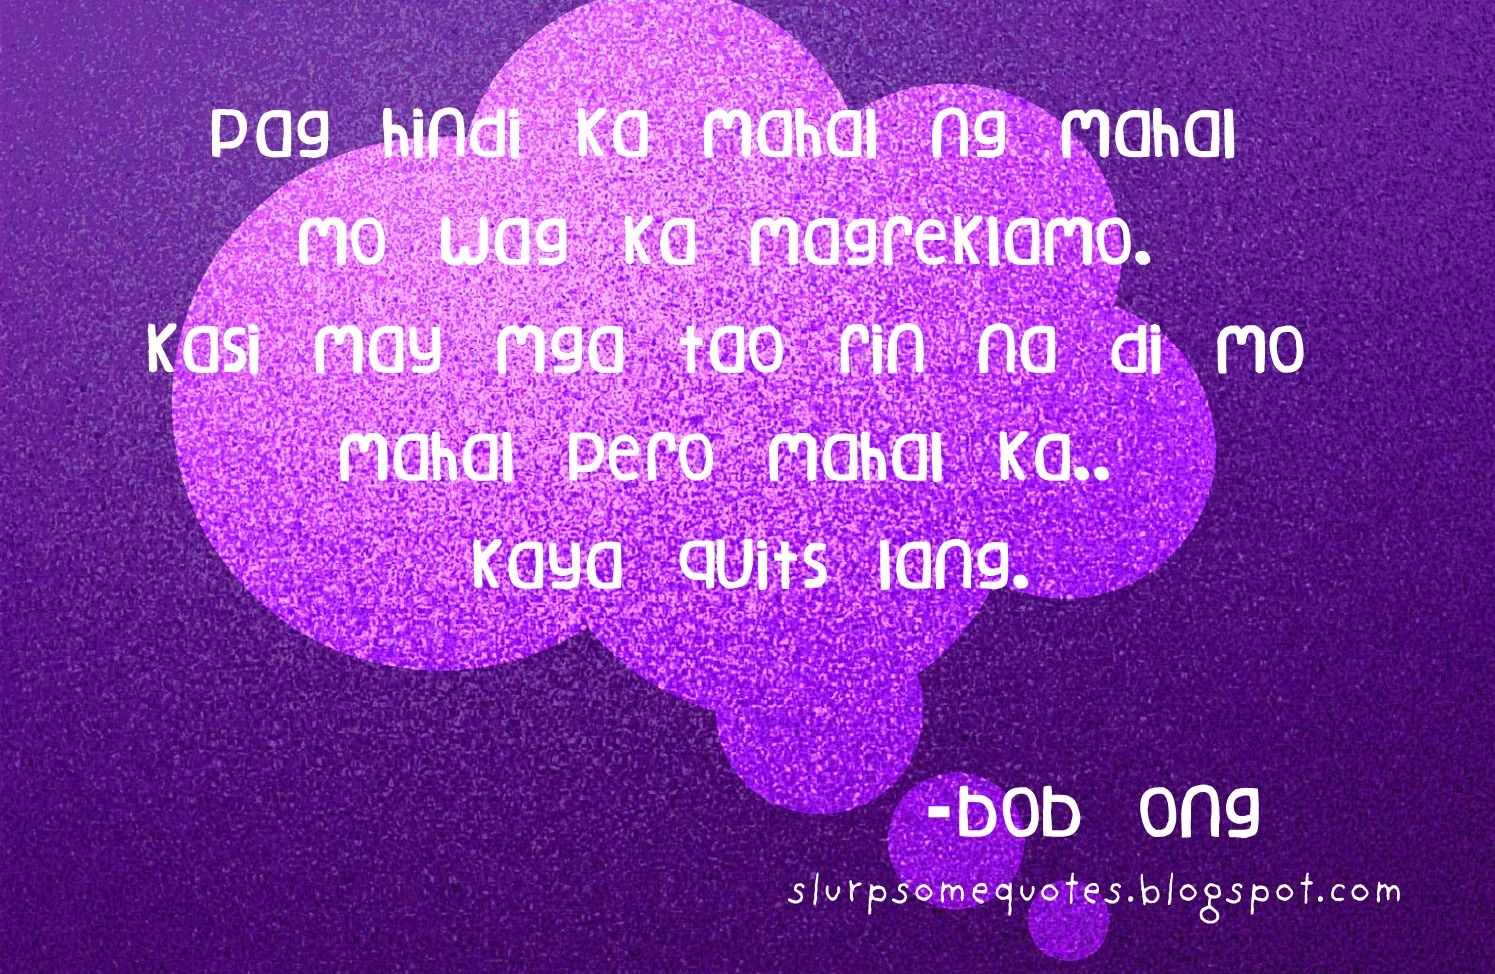 Love Quotes Tagalog Bob Ong 2012 Quotes Love Quotes For Her Flirting Quotes Love Quotes